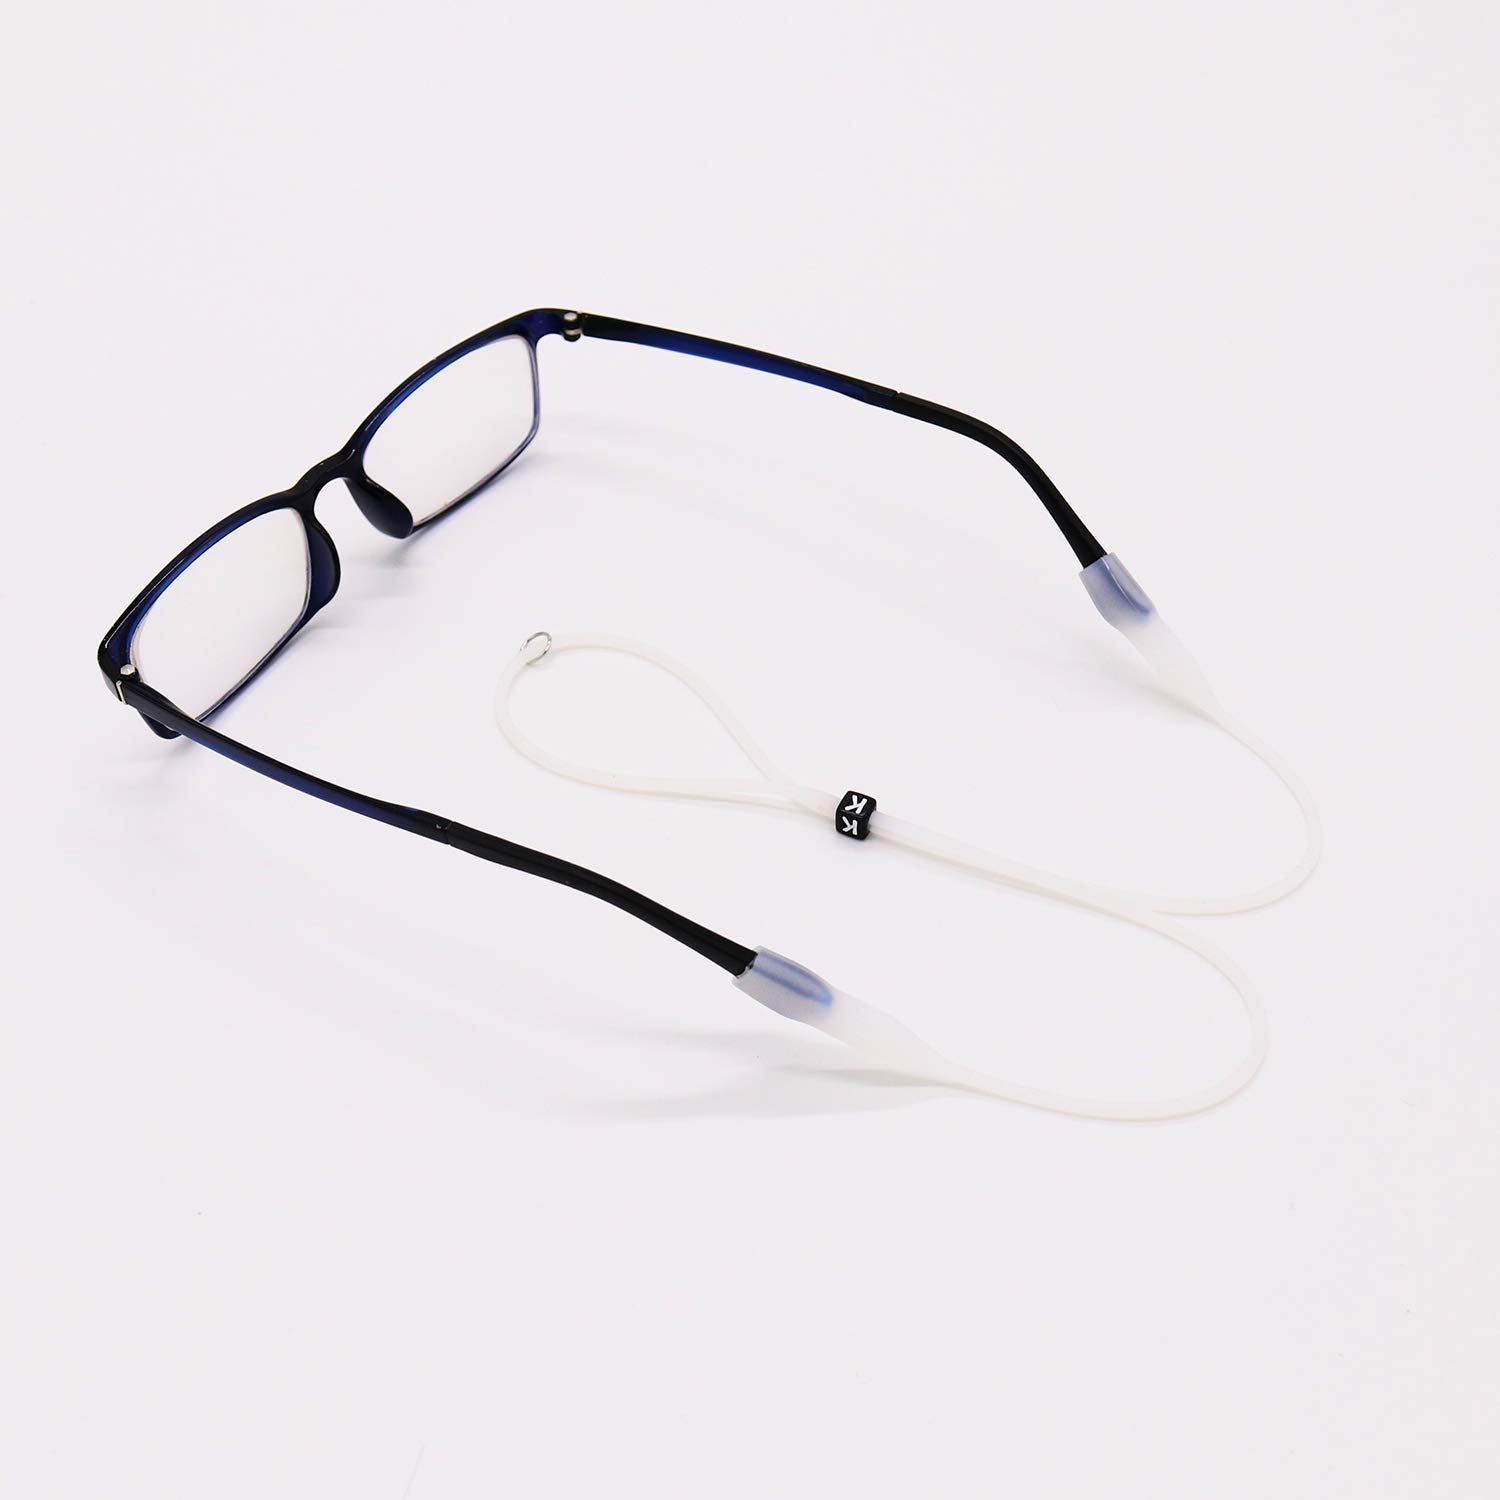 Pastall Eyeglasses Strap Adjustable Eyewear Lanyard Sports Eyeglasses Anti-slip Hooks Silicone